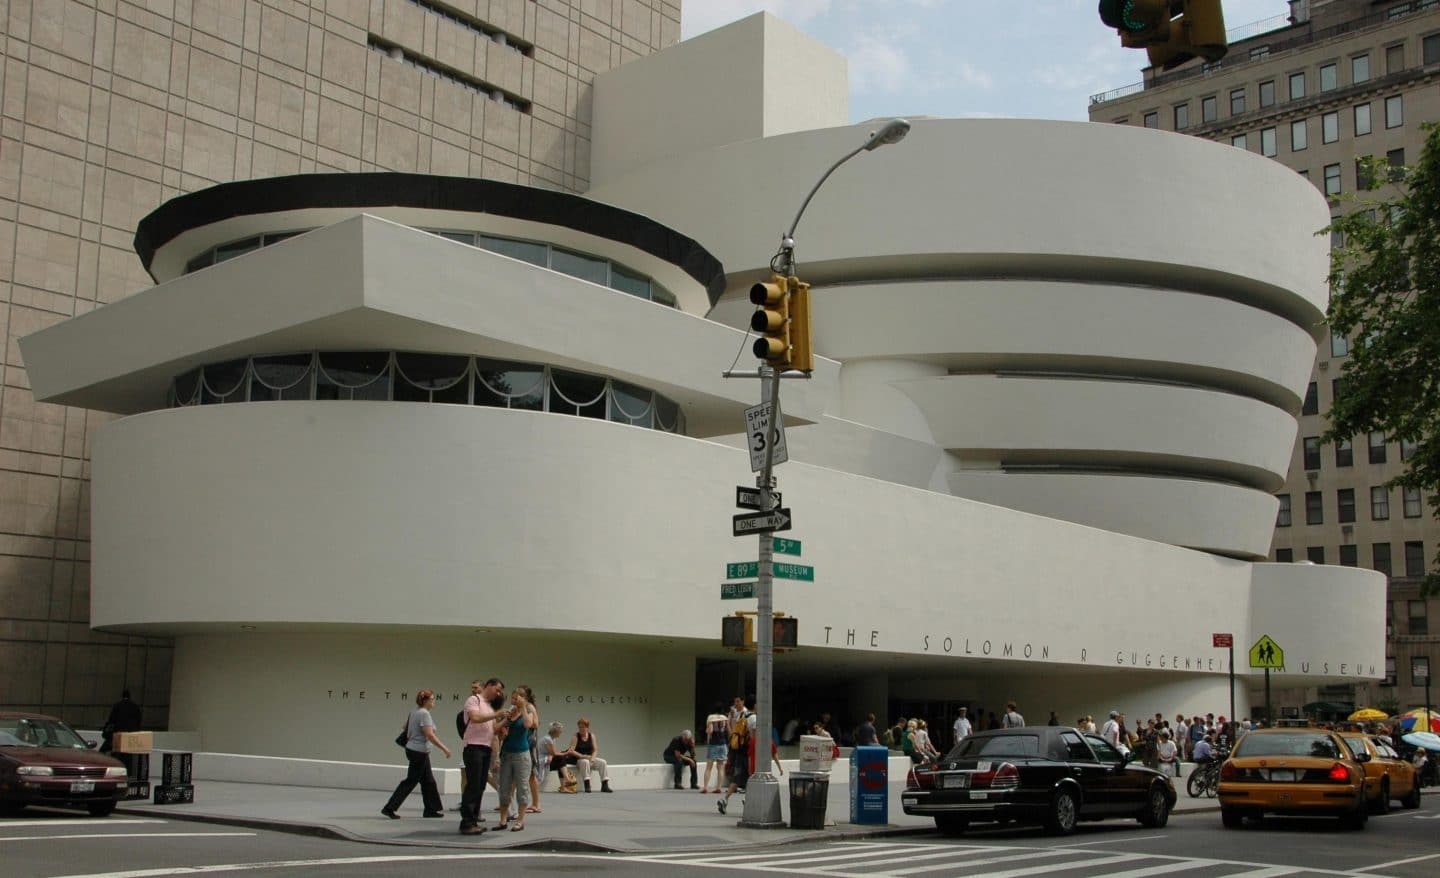 Guggenheim müzesi, New York City